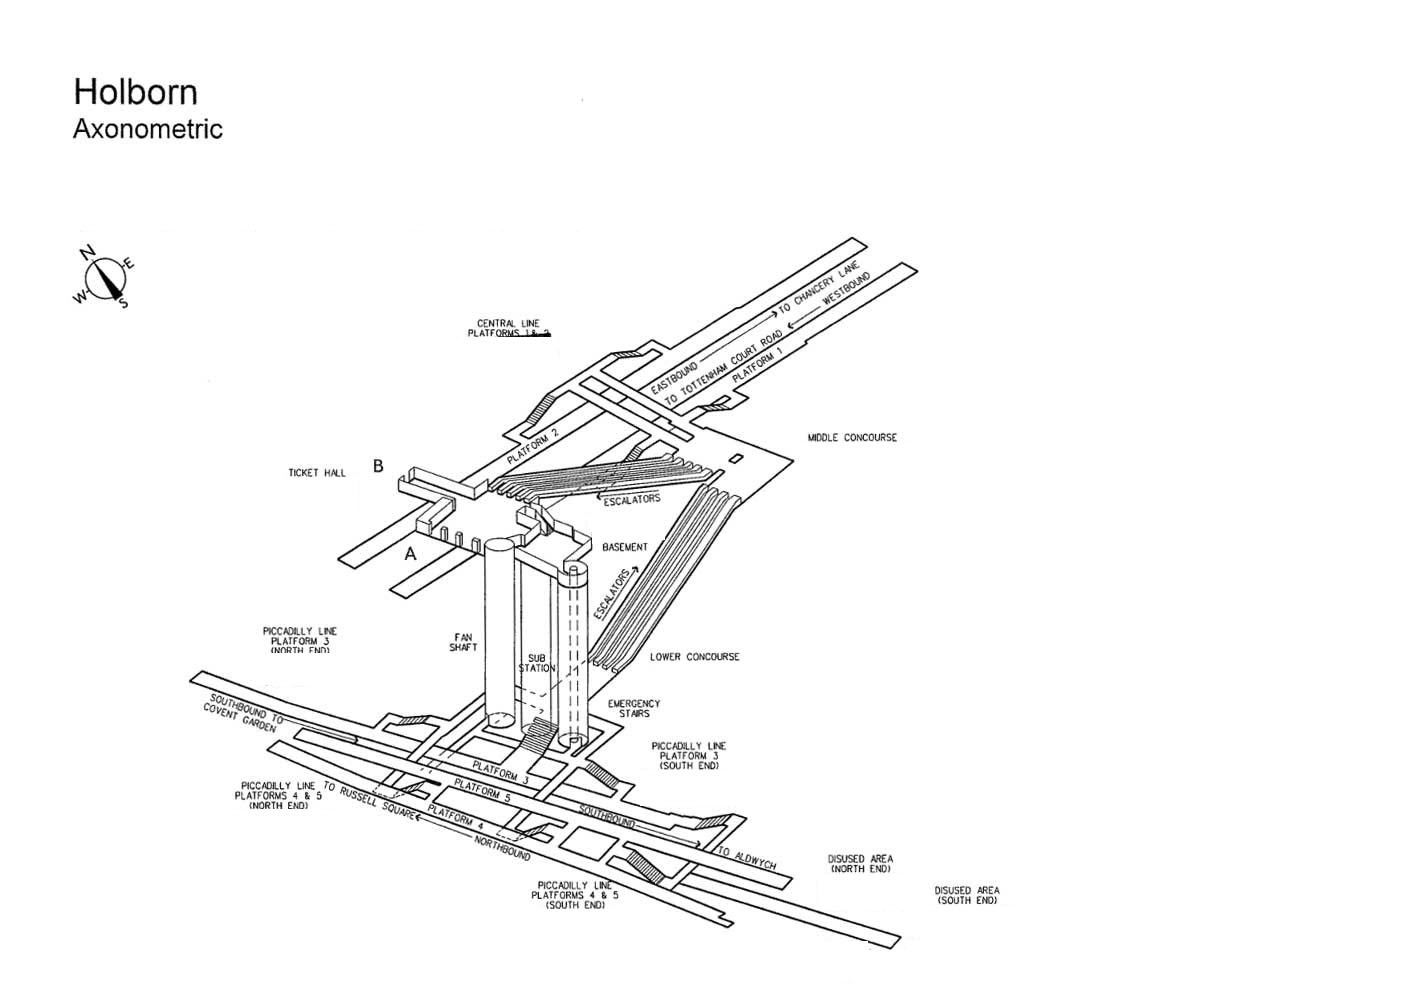 3d Maps Of London Underground Stations